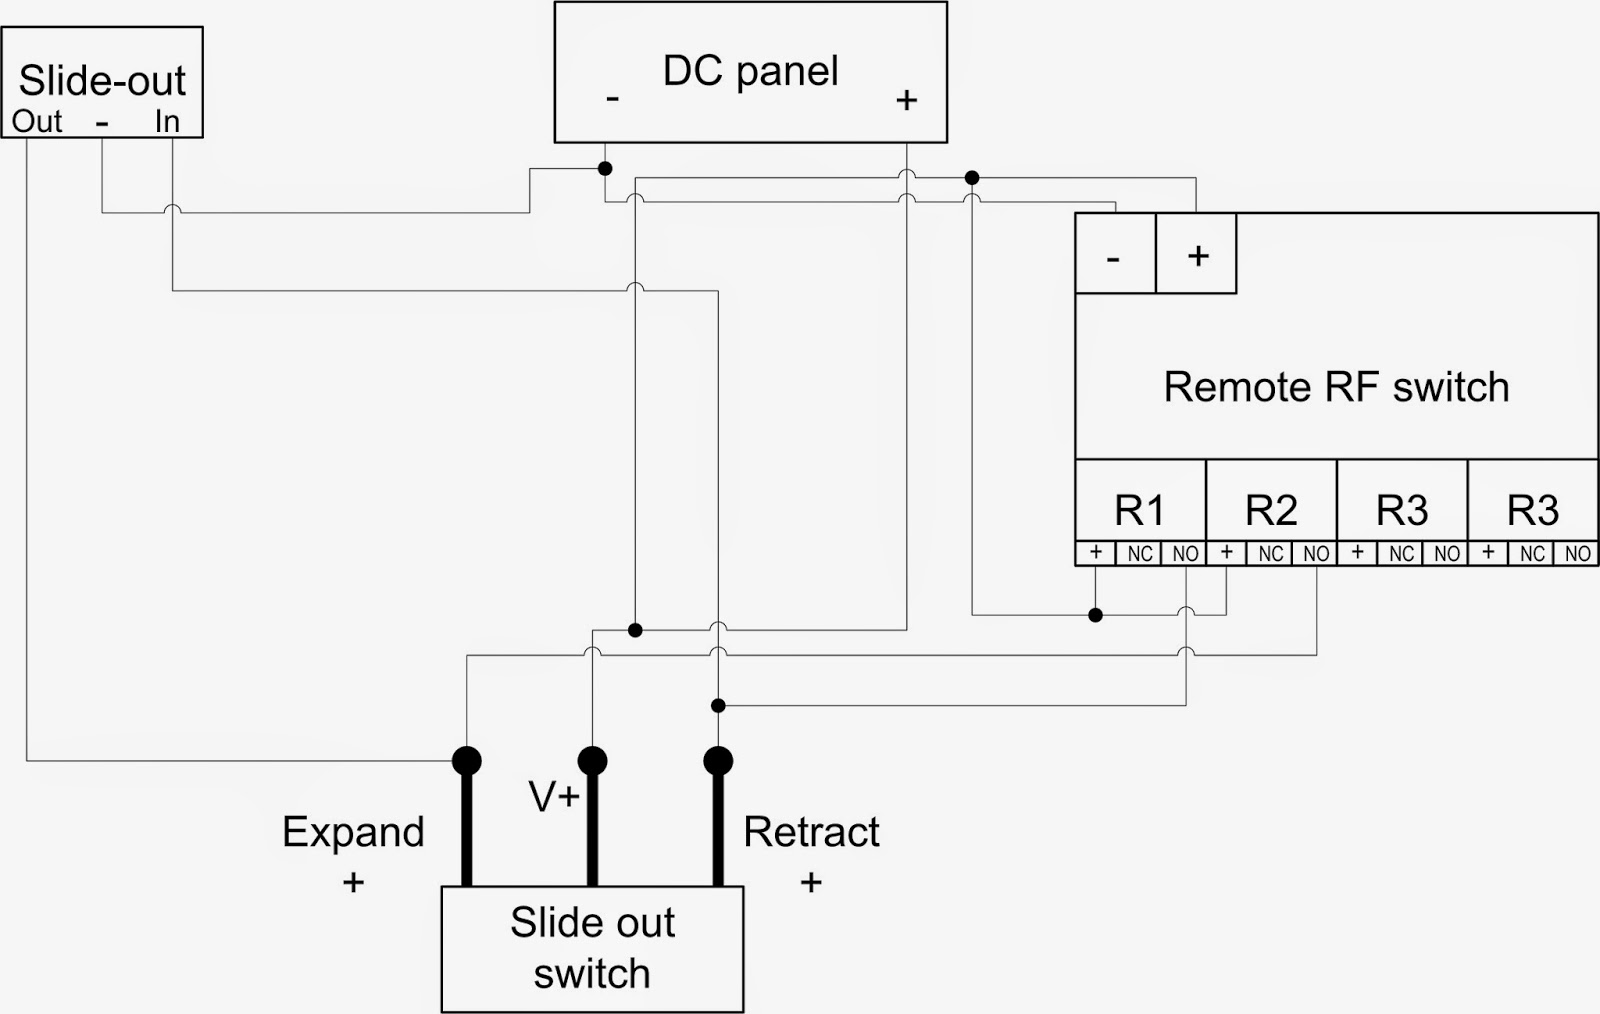 remoteRF my rv mods remote control for slide out Single Phase Motor Wiring Diagrams at edmiracle.co